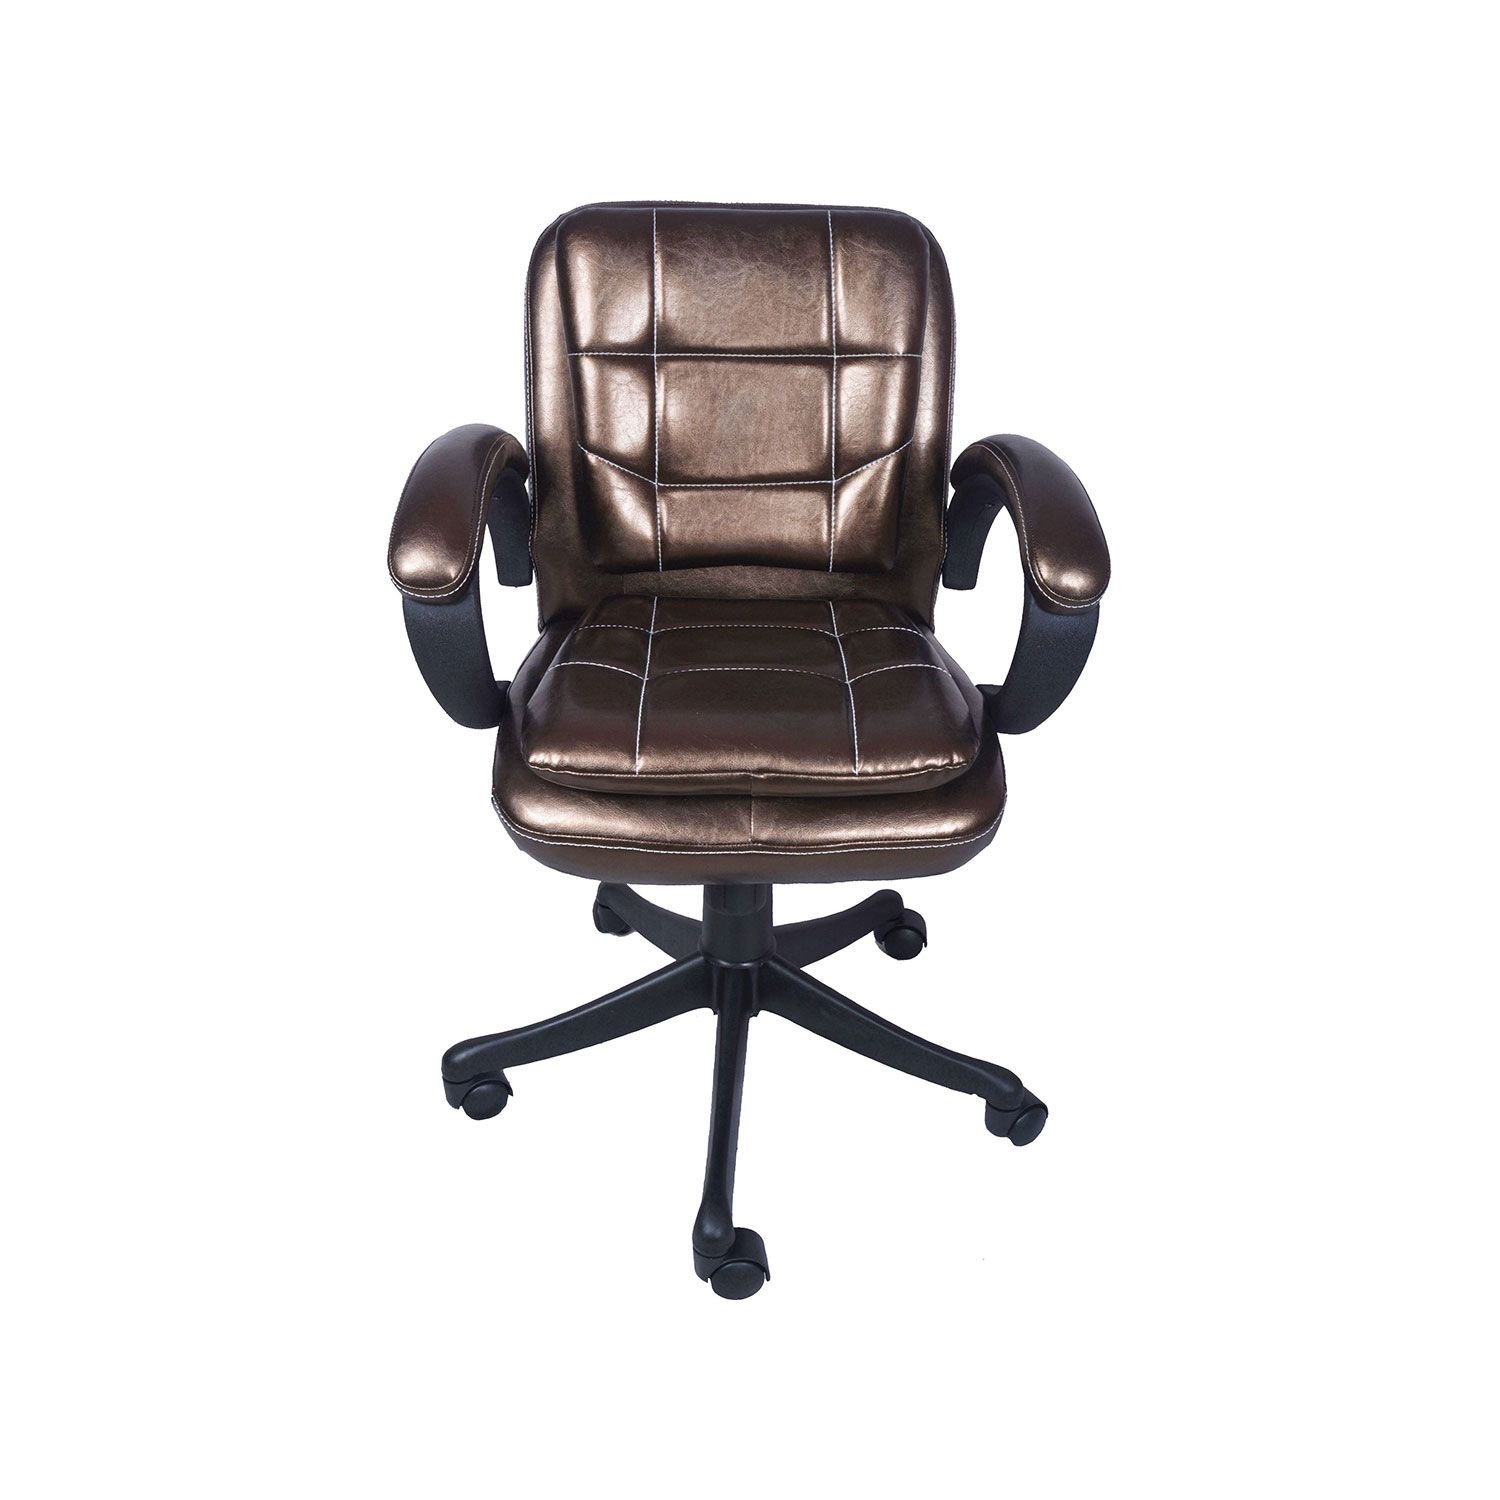 THE CHIQUITA LOW BACK CHAIR IN COPPER COLOUR Office Furniture Online,  Modular Office Furniture Chairs